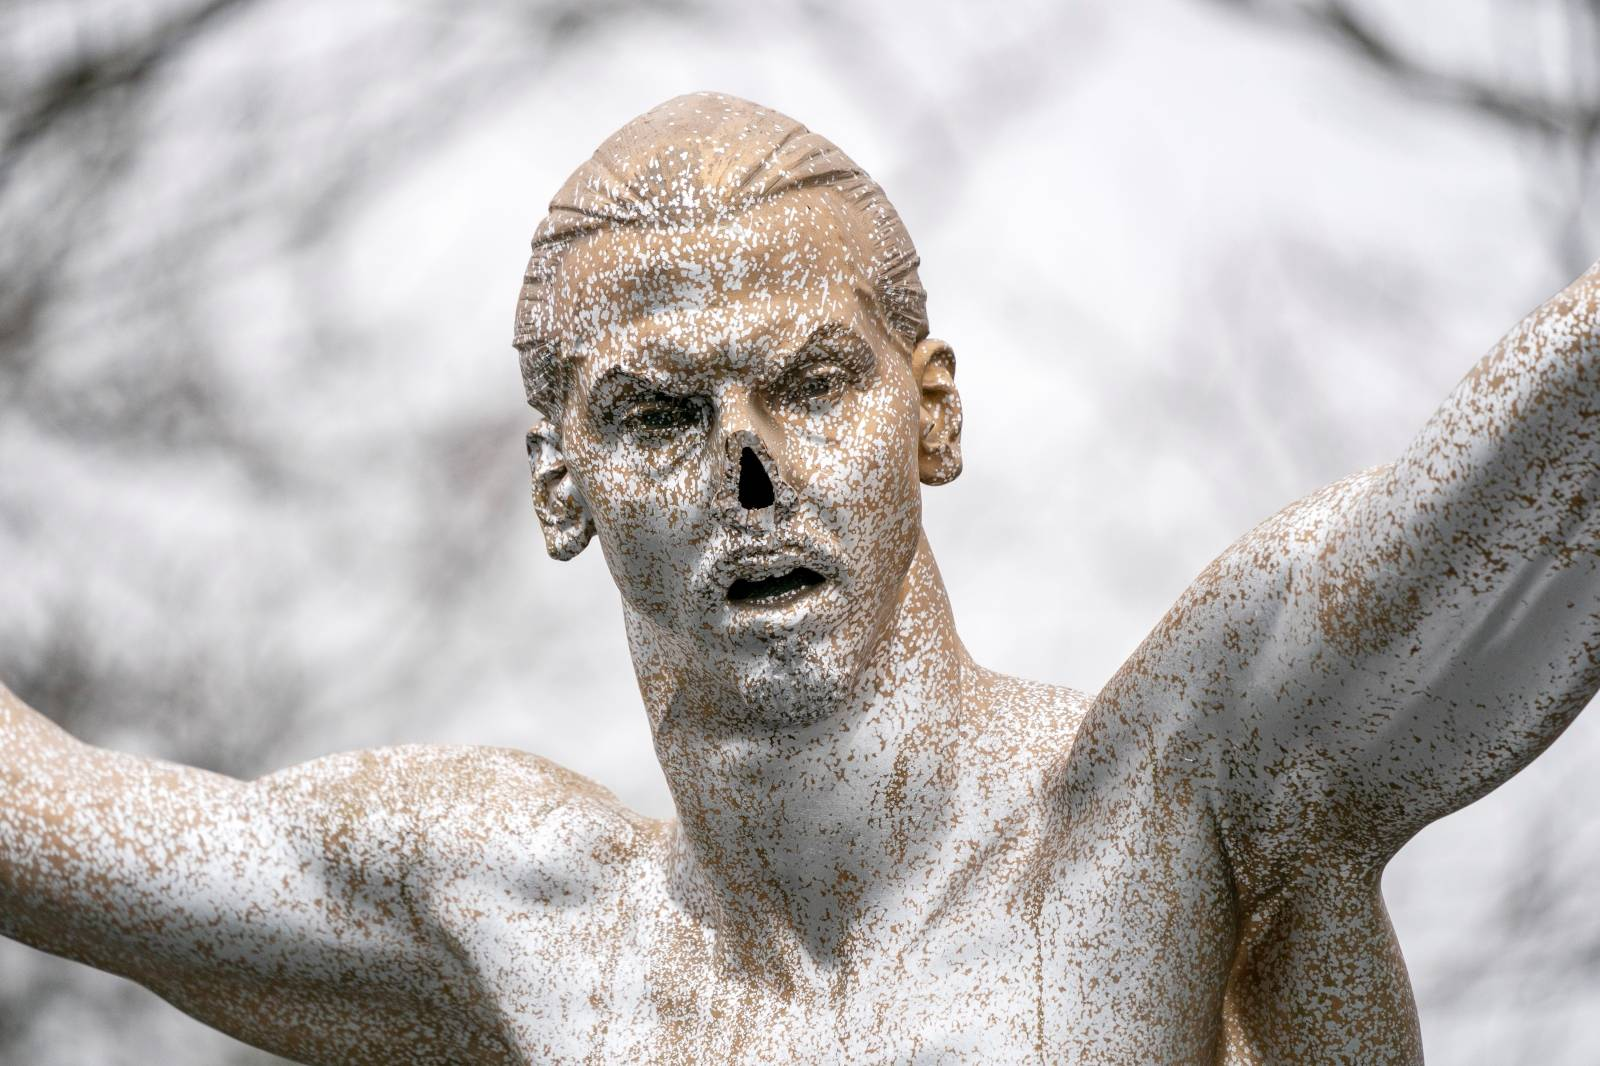 Vandalized Zlatan Ibrahimovic statue is seen in Malmo